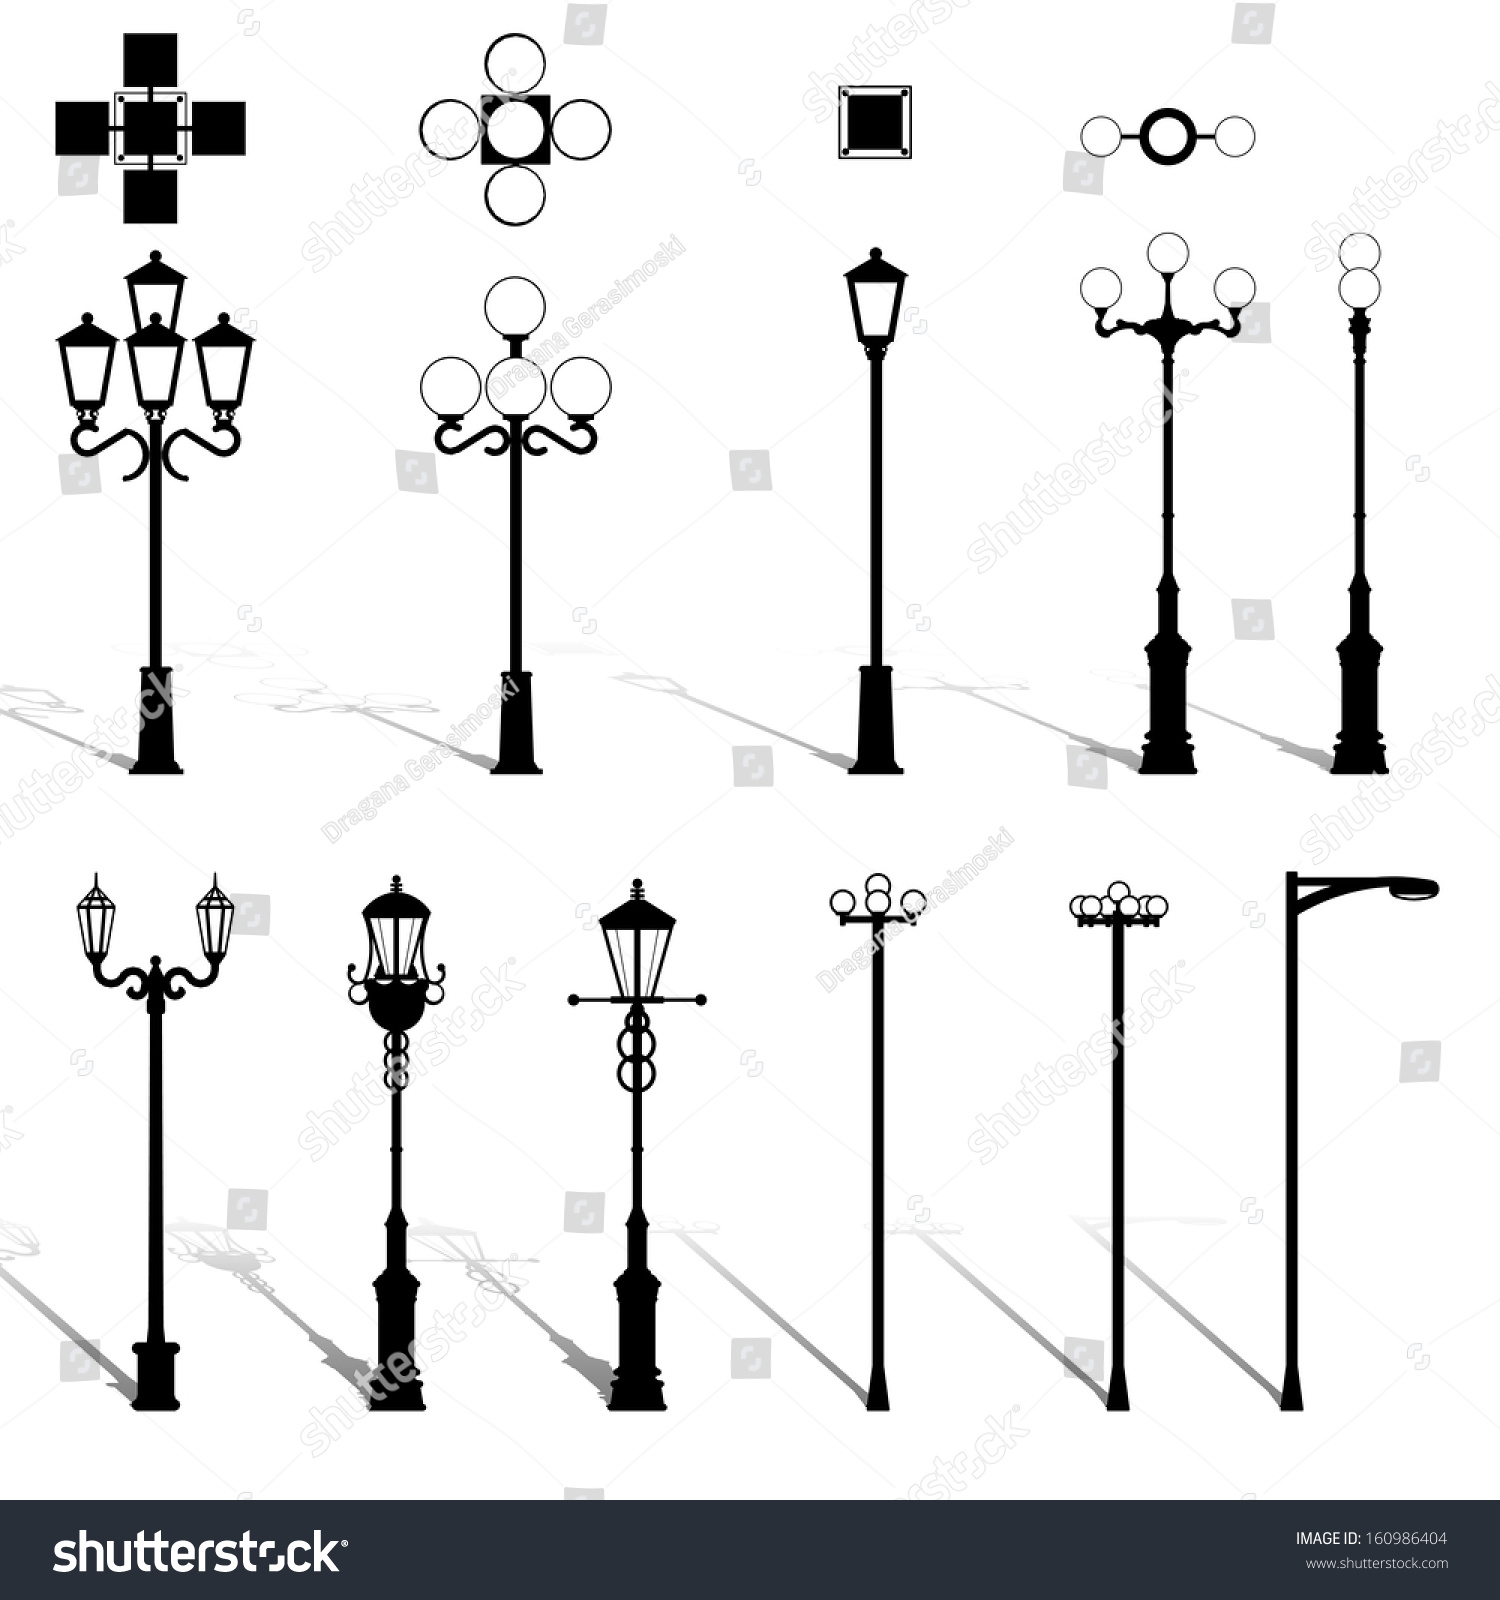 Outdoor Electric Lamp Post: Modern Lightning Outdoor Lamp Pole Lamps Stock